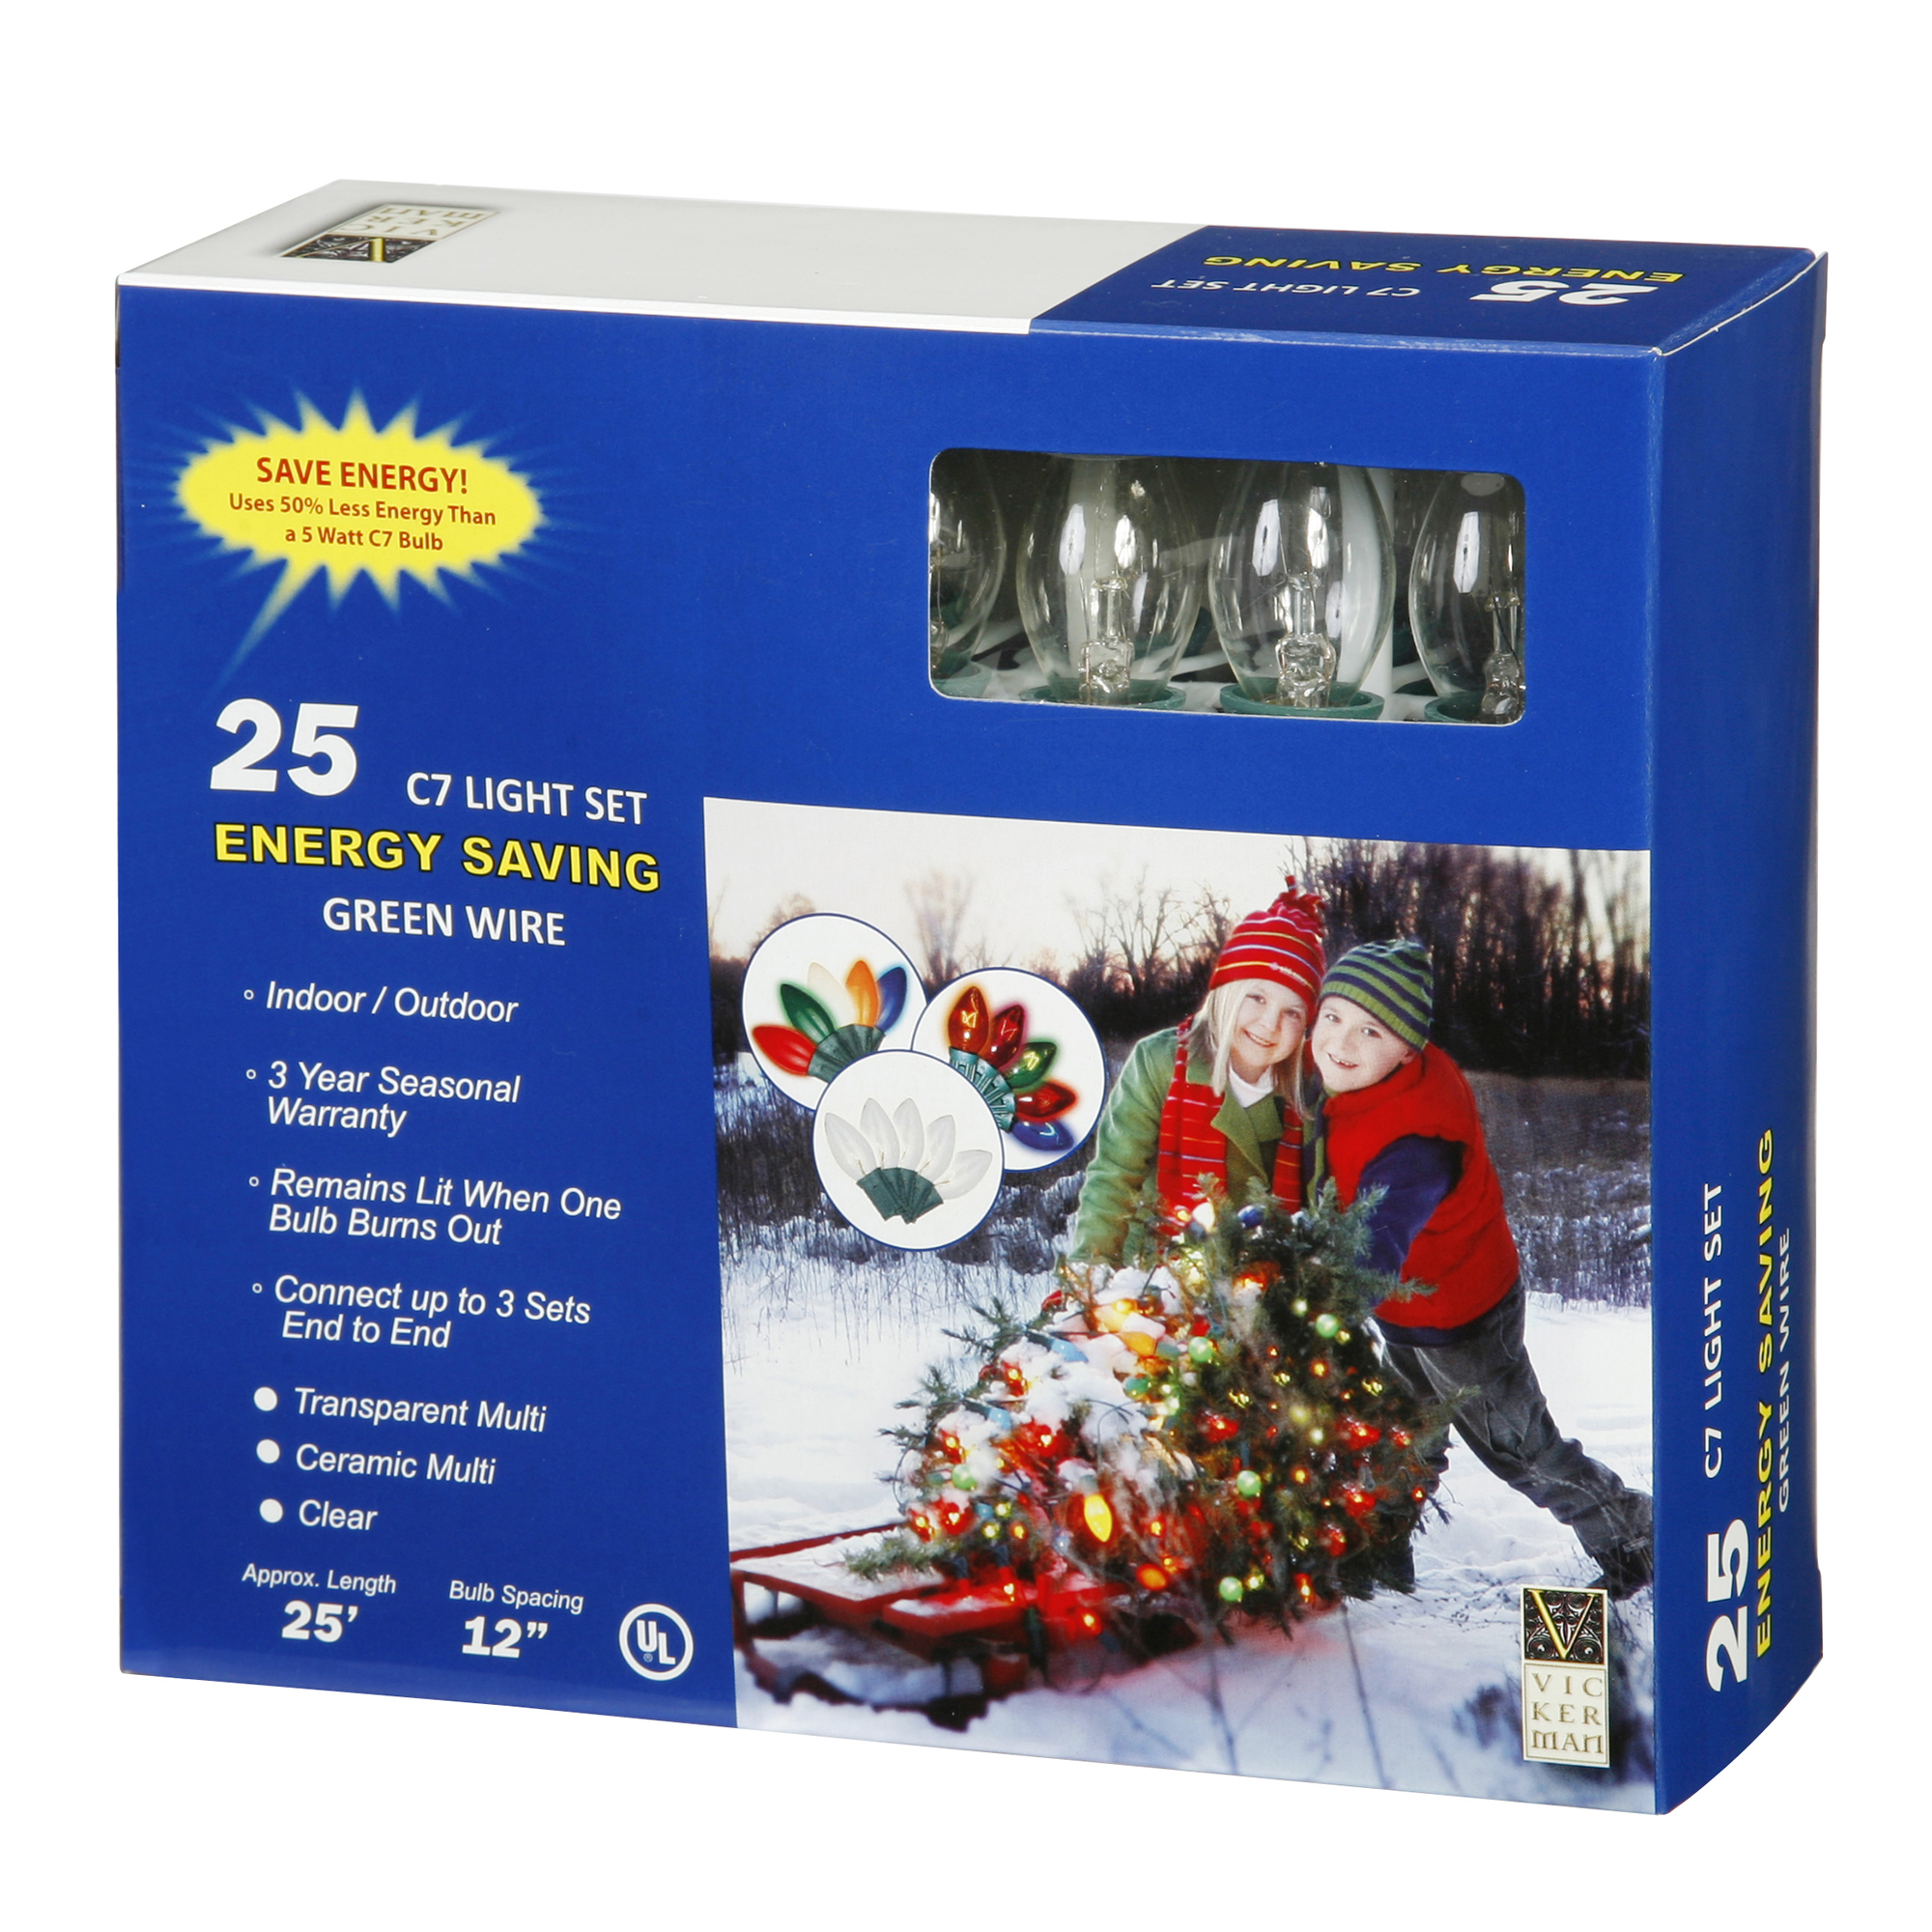 """Vickerman 25 Light C7 Clear Twinkle End Connecting Set 12"""" Bulb Spacing 25' Long"""